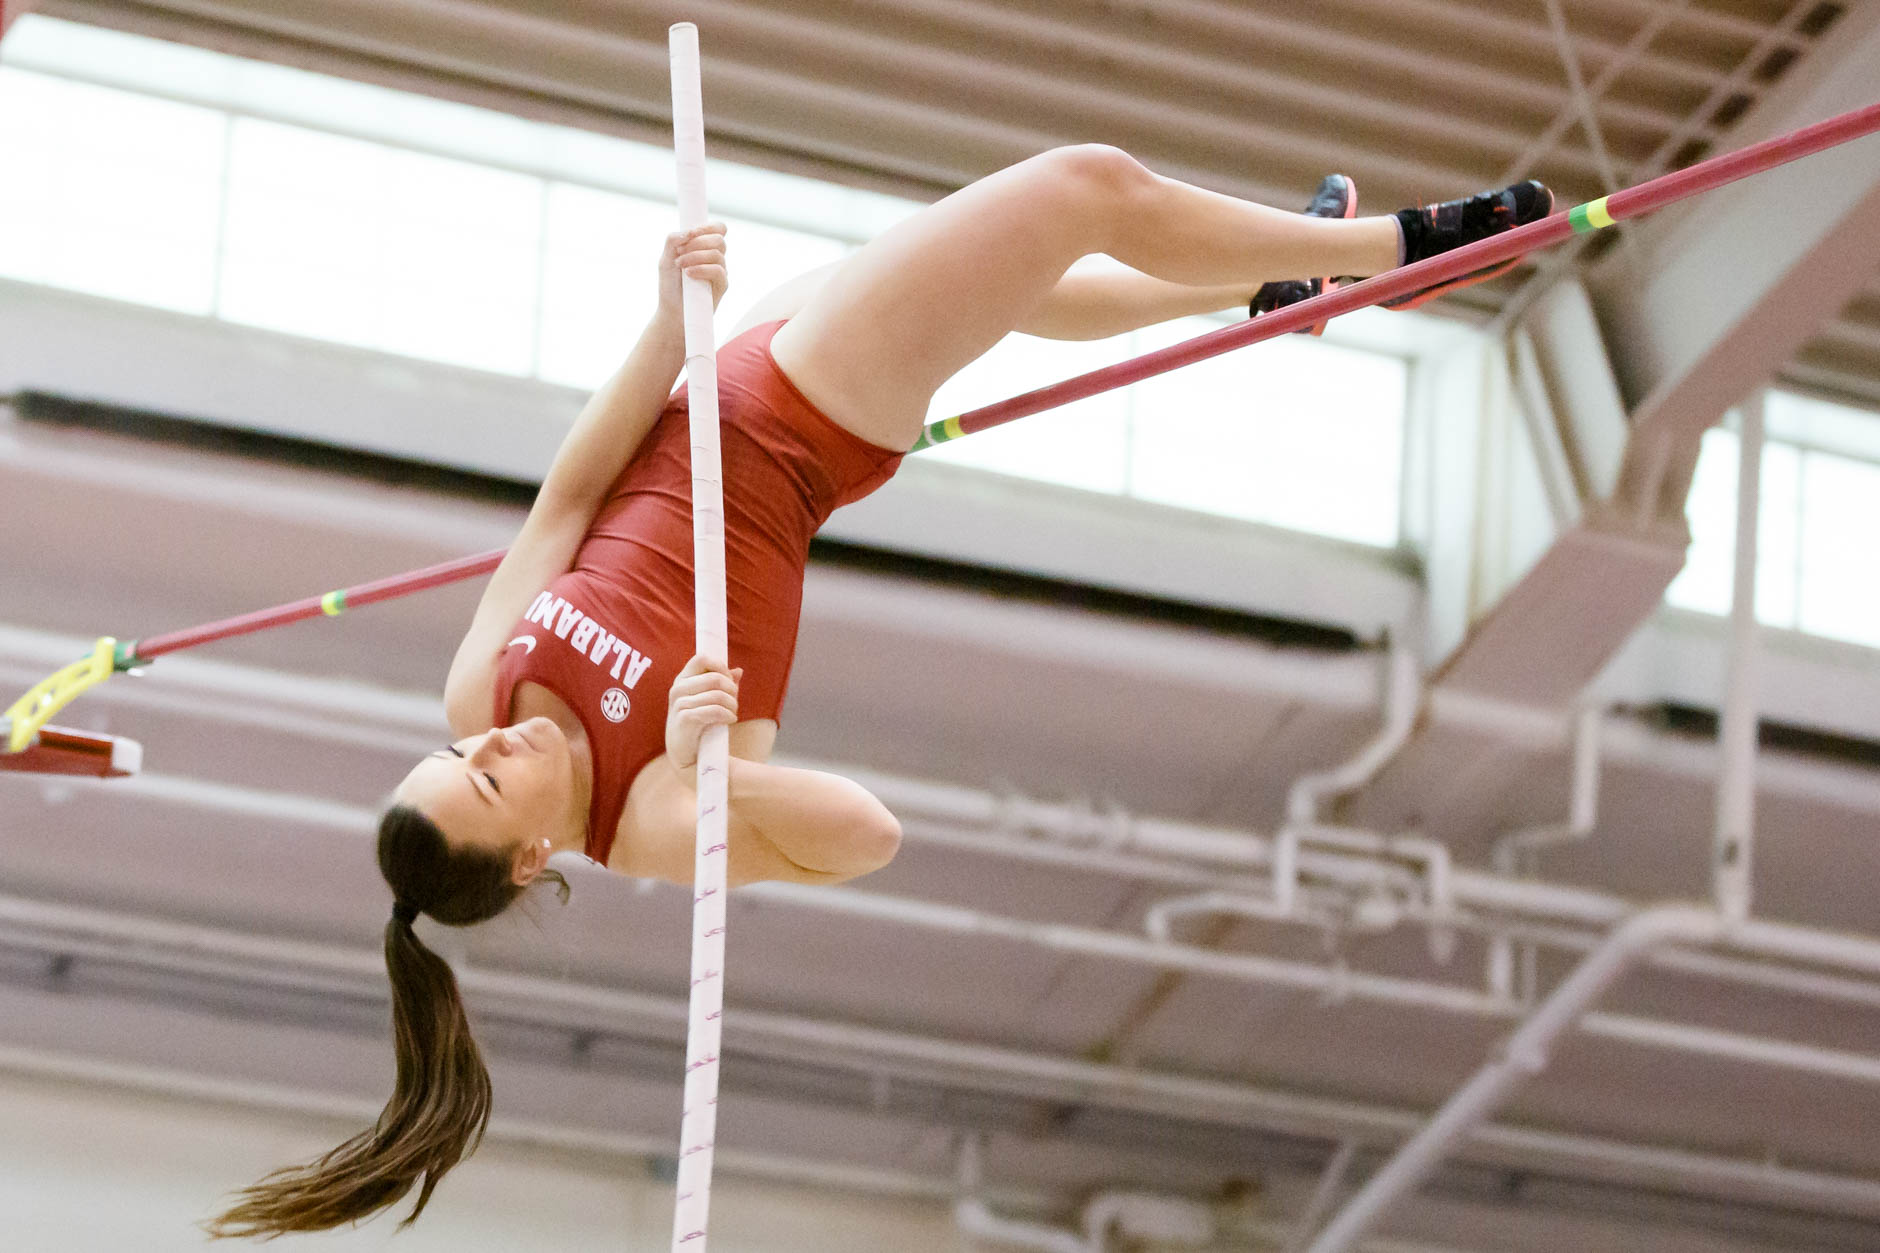 Alabama's Taylor Pickett competes in the pole vault during the Indiana University Relays in Bloomington, Indiana on Saturday, Feb. 1, 2020. (Photo by James Brosher)